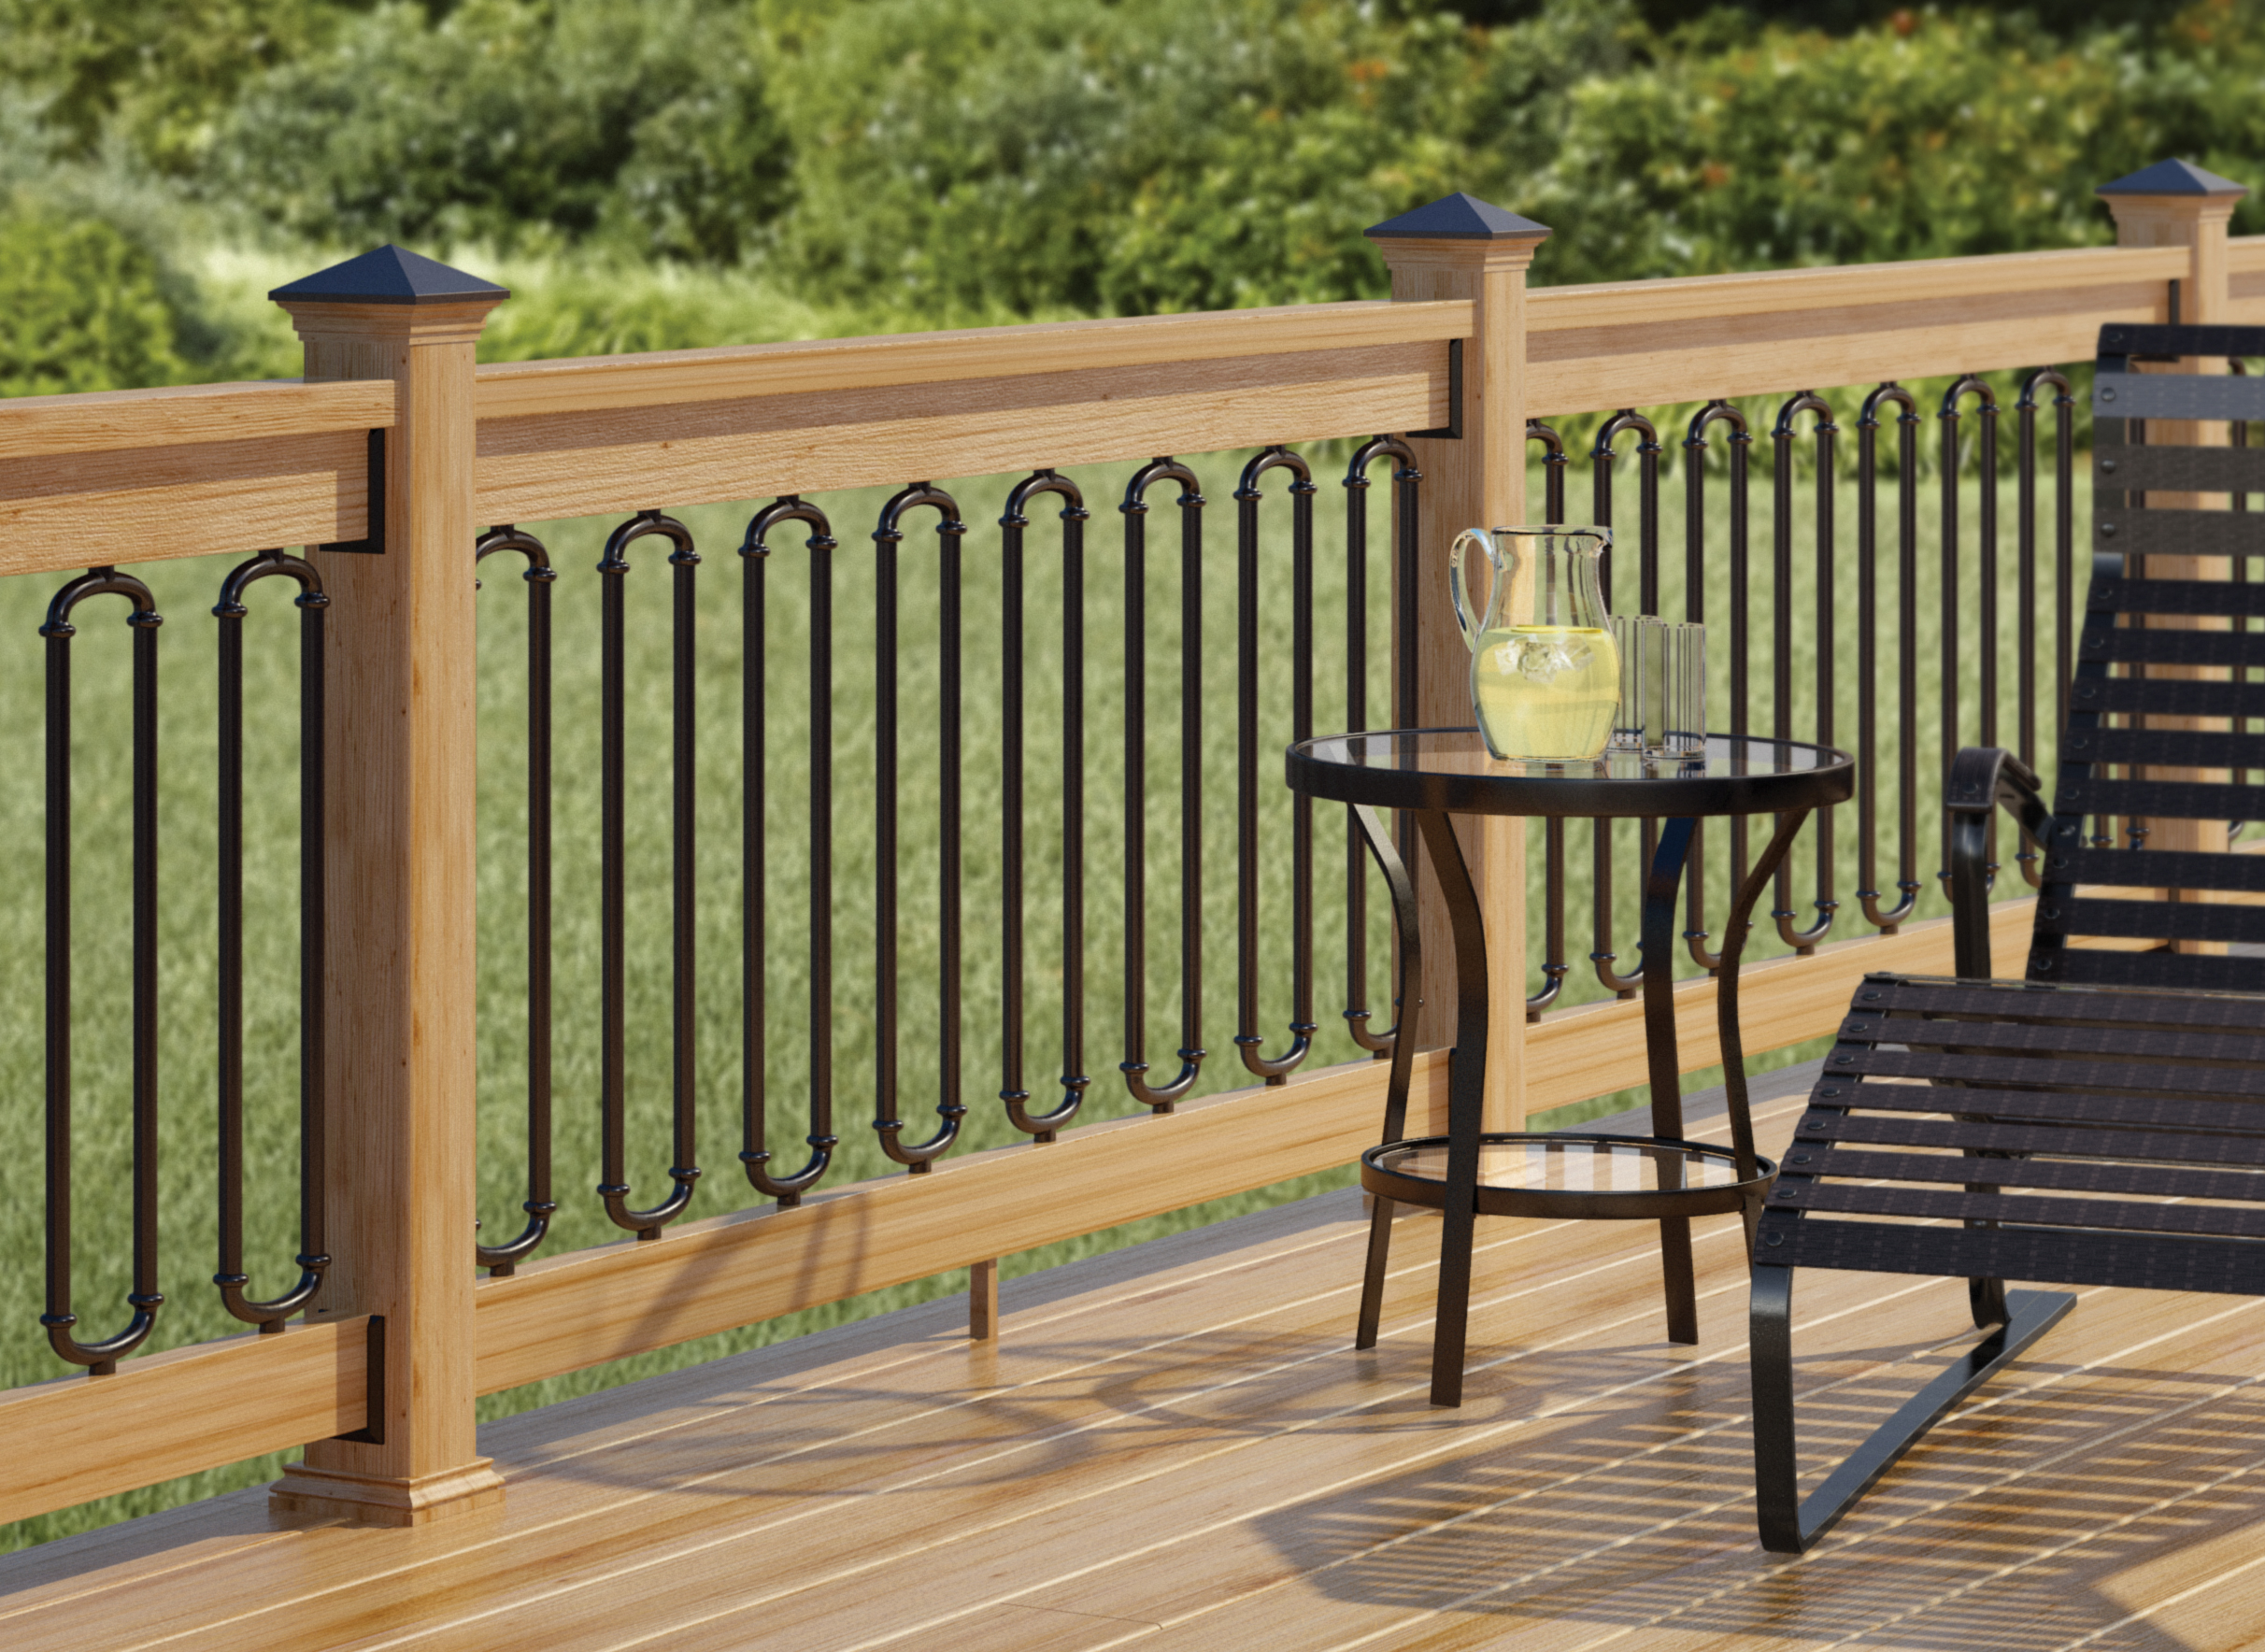 New deckorators duo connector adds creativity functionality to deck railing - Deck rail planters lowes ...